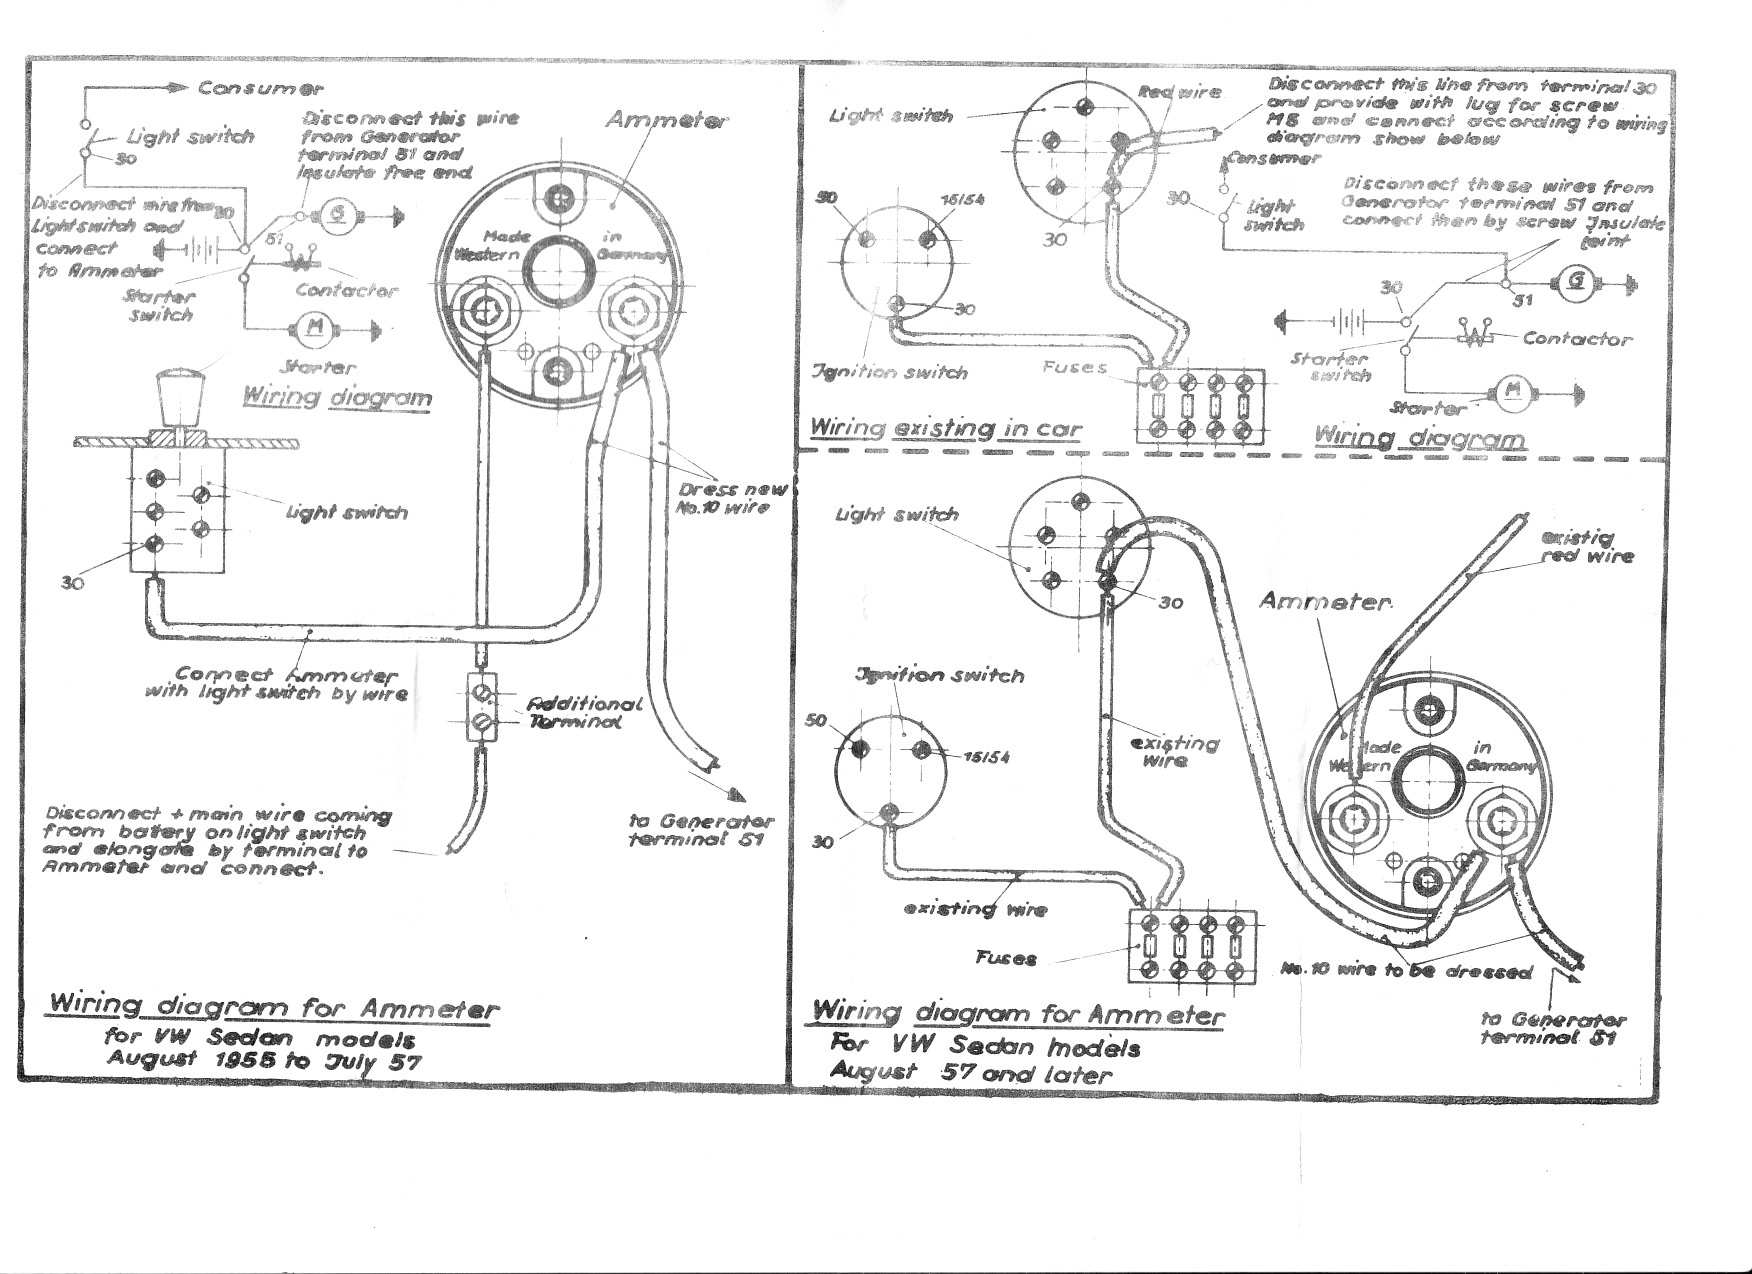 sunpro gauges wiring diagram sunpro automotive wiring diagrams description 3 sunpro gauges wiring diagram